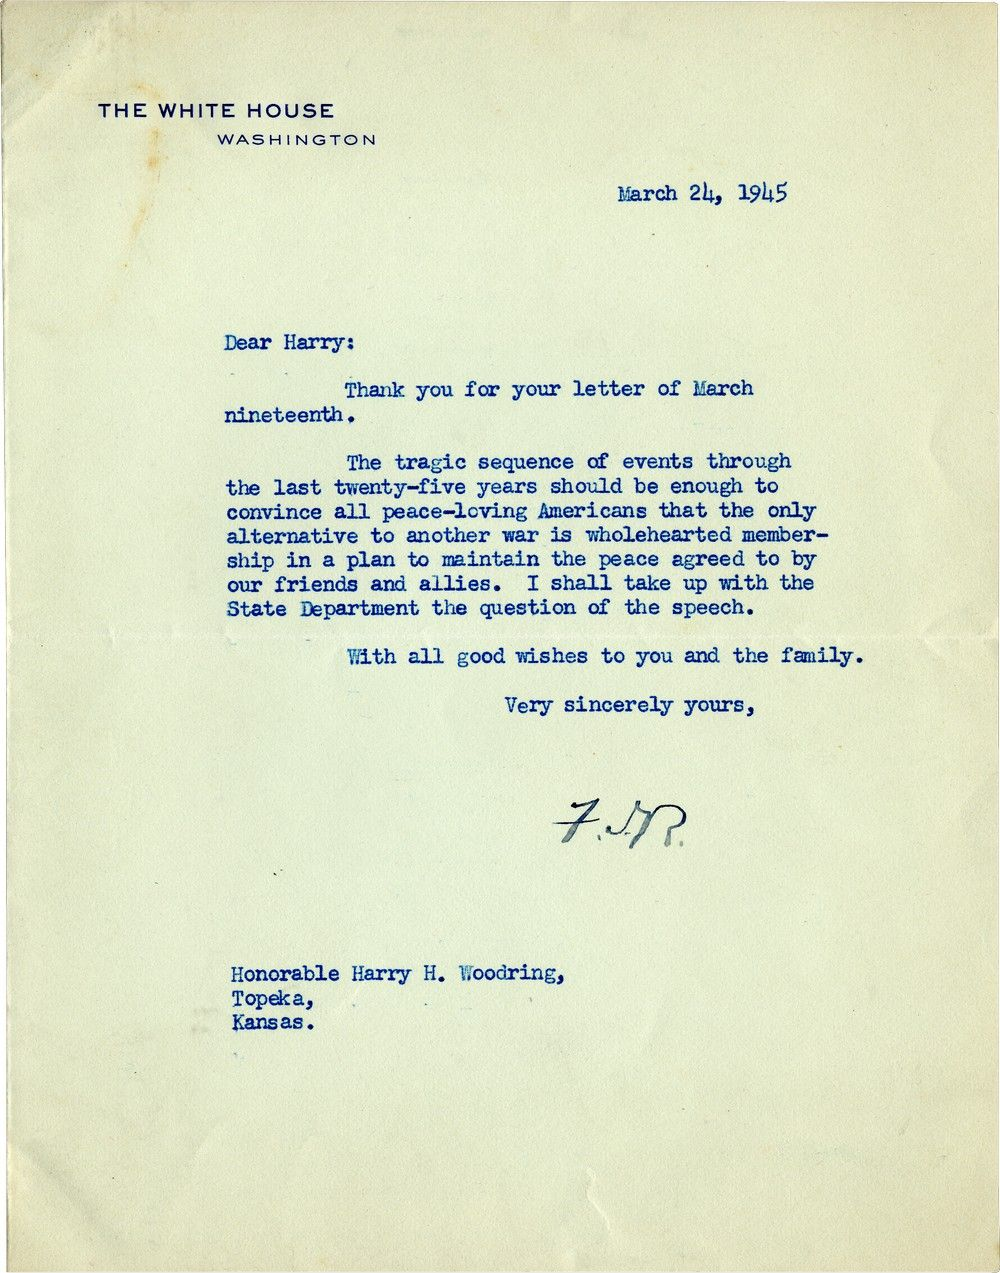 Hiding Two Deadly Illnesses, Franklin D. Roosevelt Dreams of a World Organization for Peace: The UN